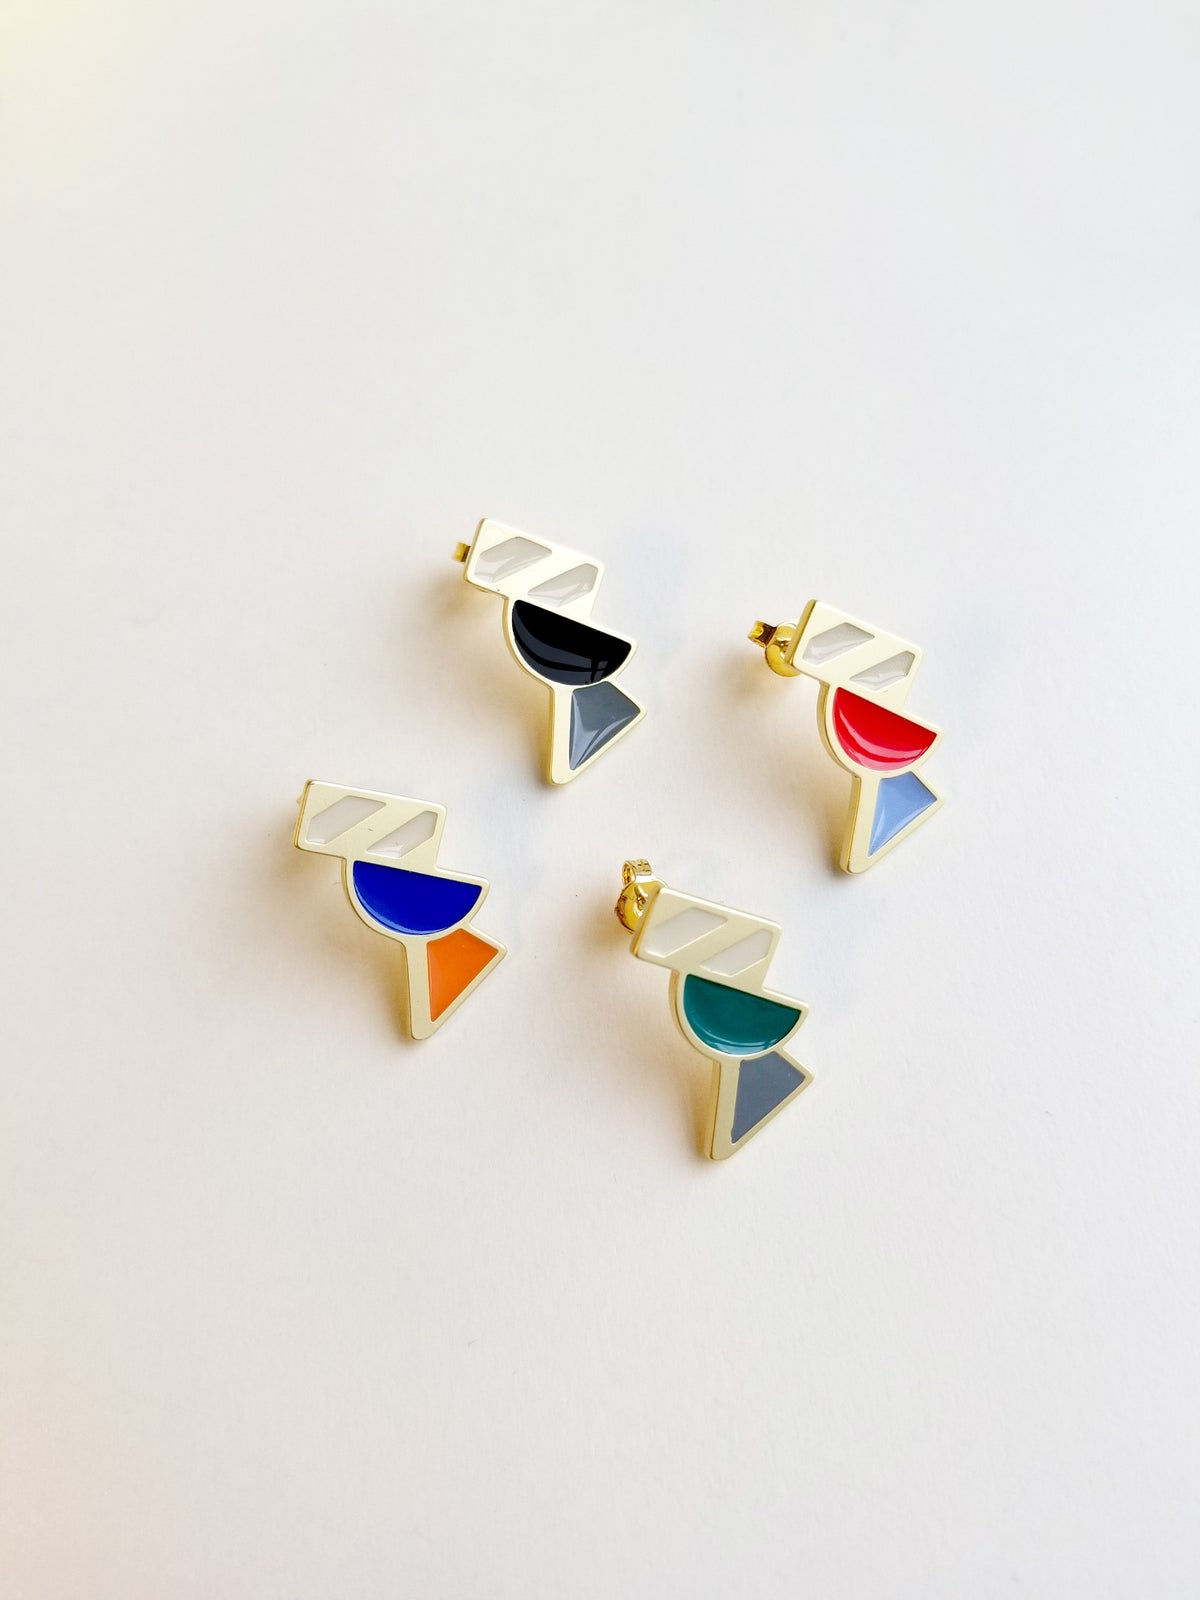 Image of Tilt Earrings • Stainless steel • Silver • Orange/Blue